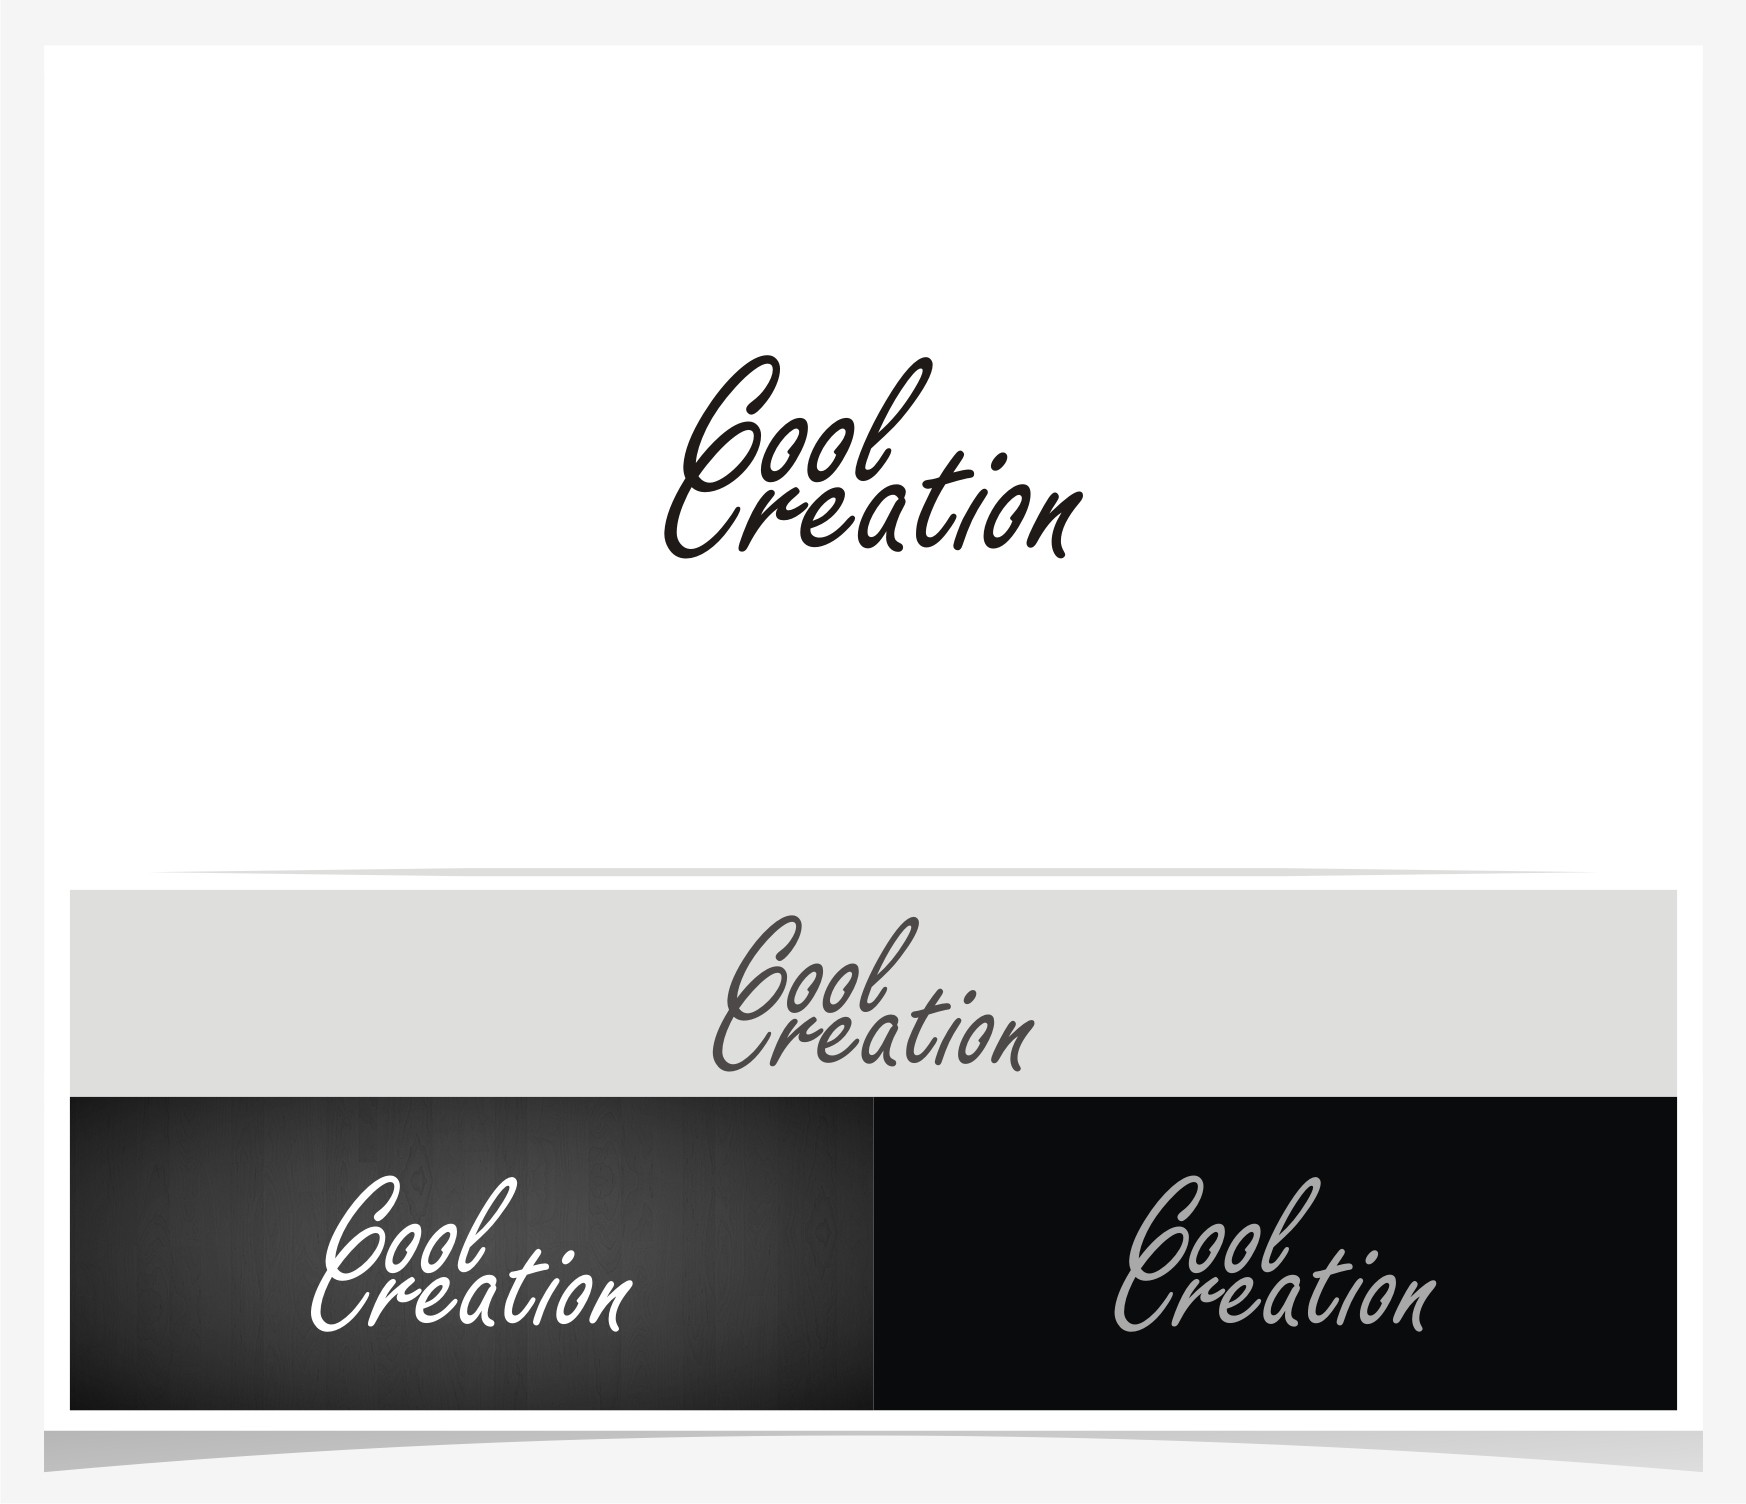 CoolCreation needs a new logo